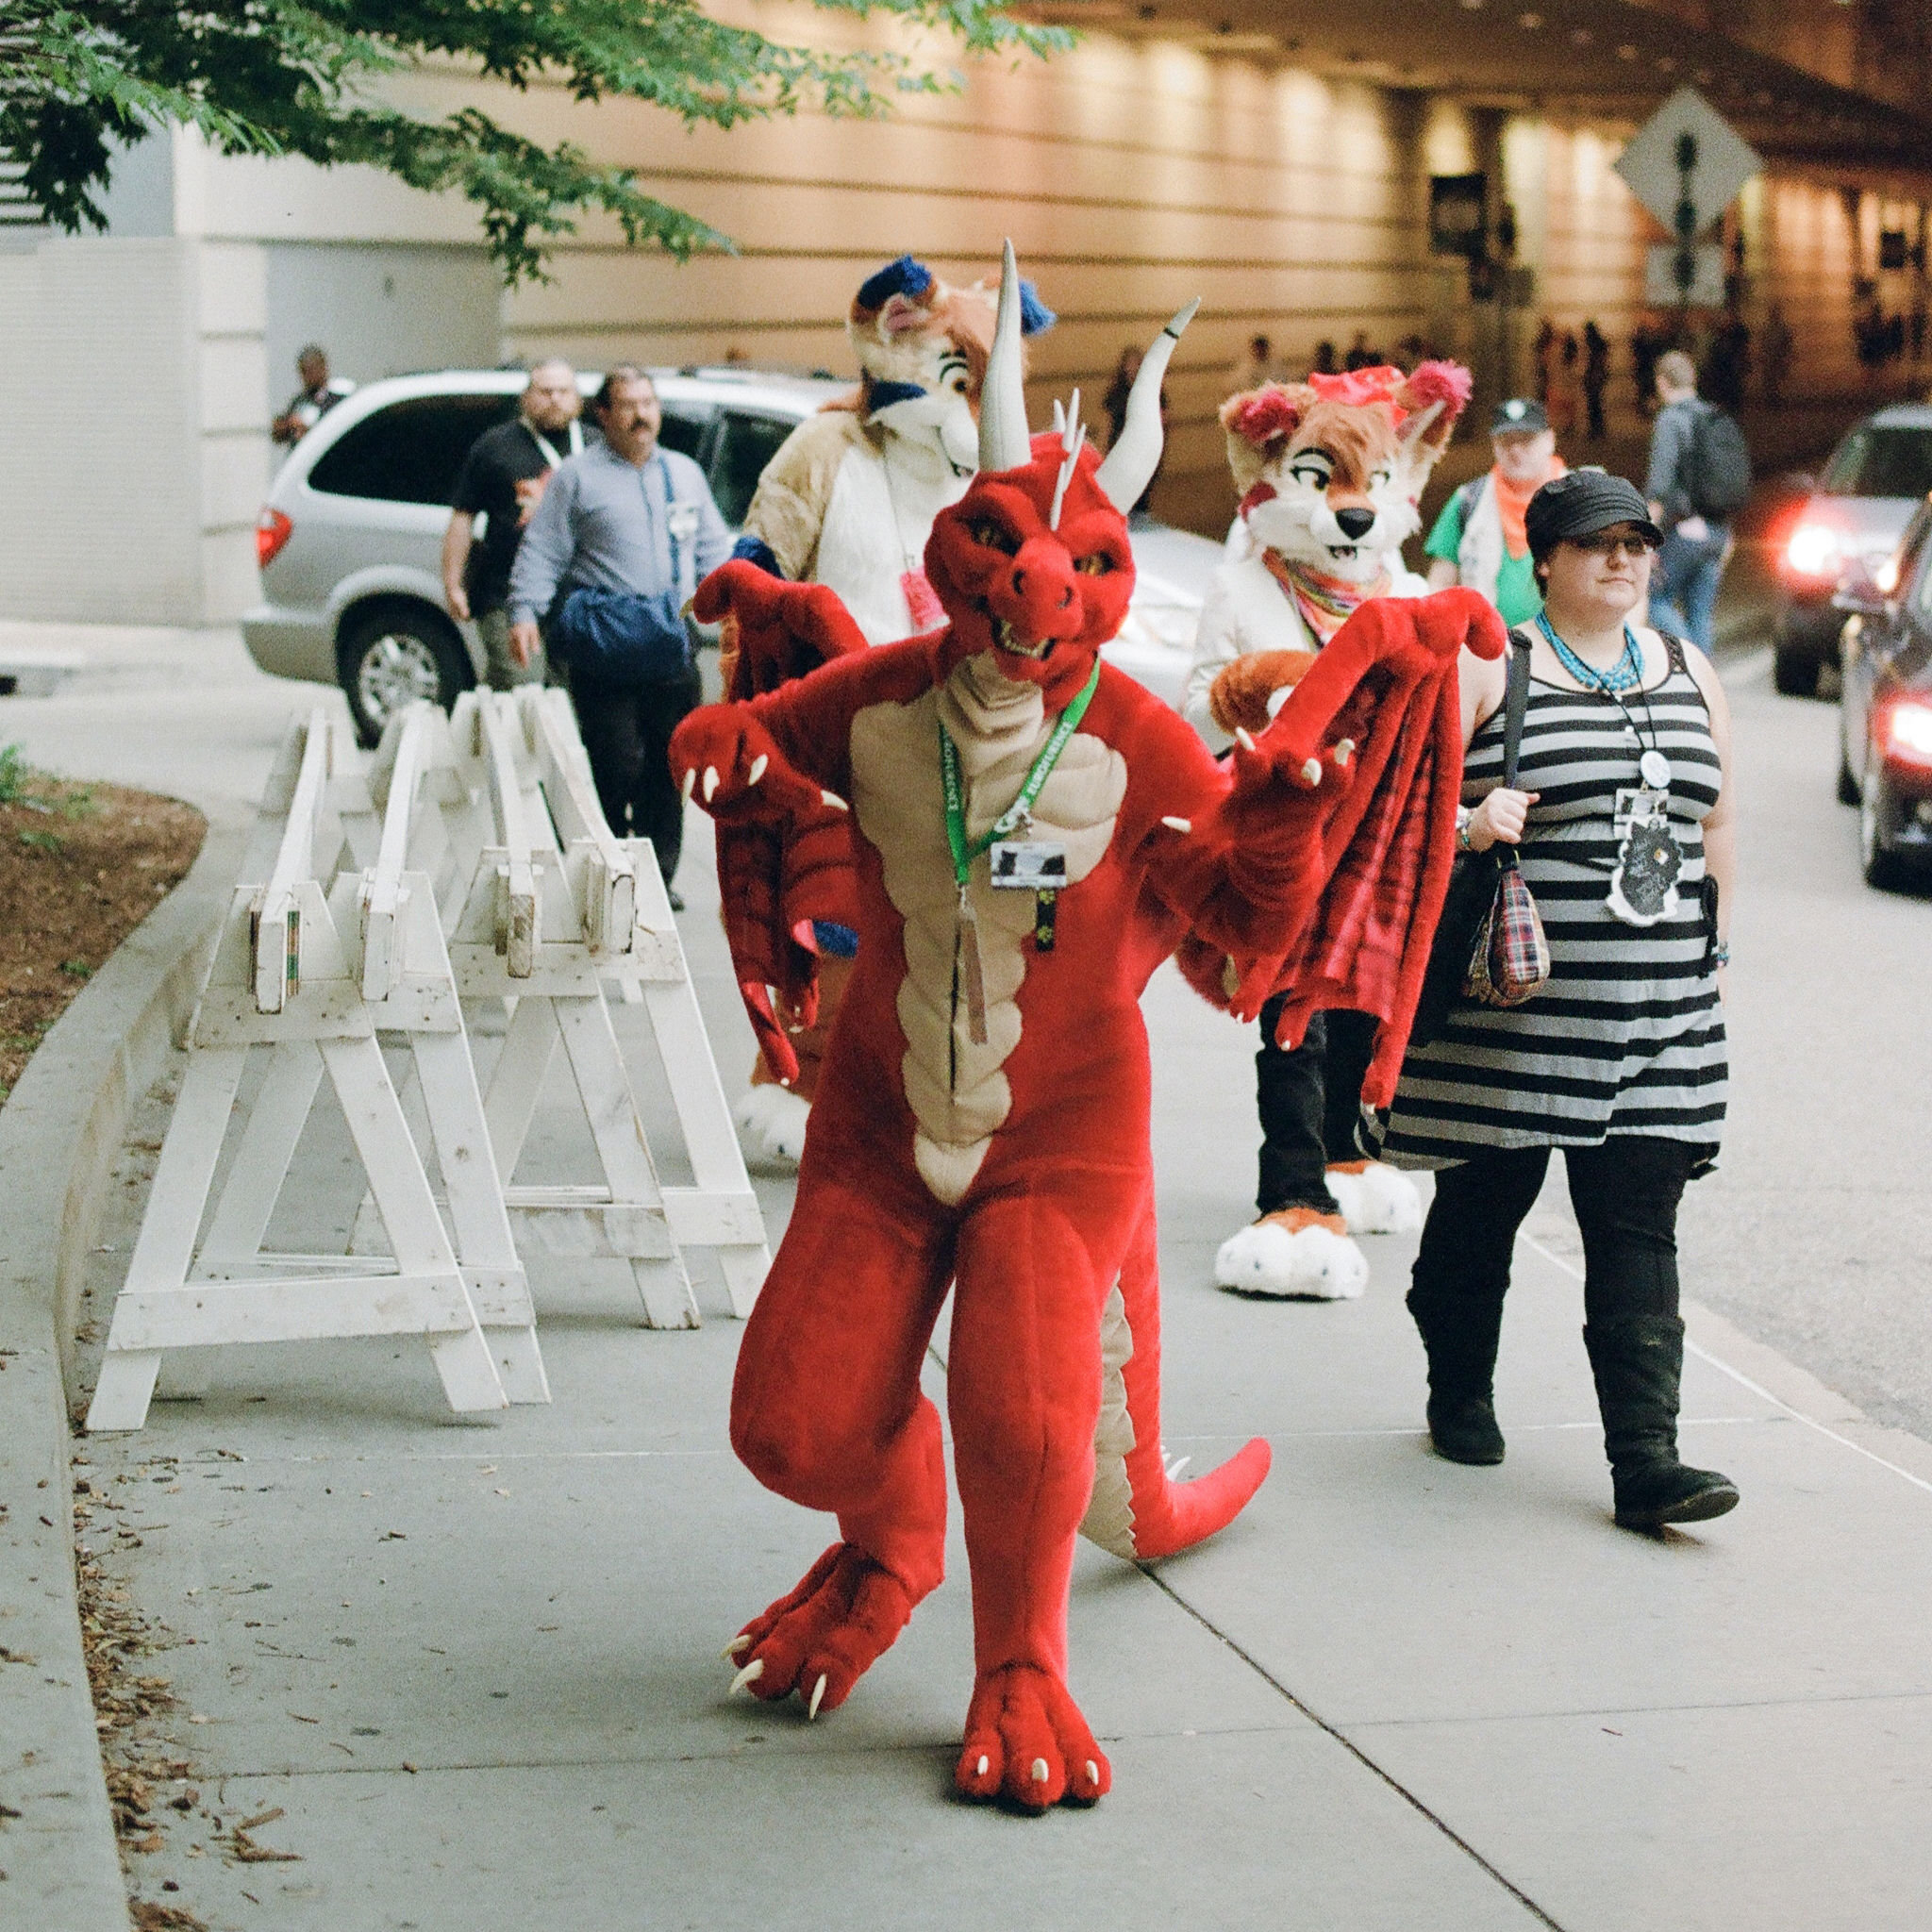 anthrocon-pittsburgh-2015-24.jpg